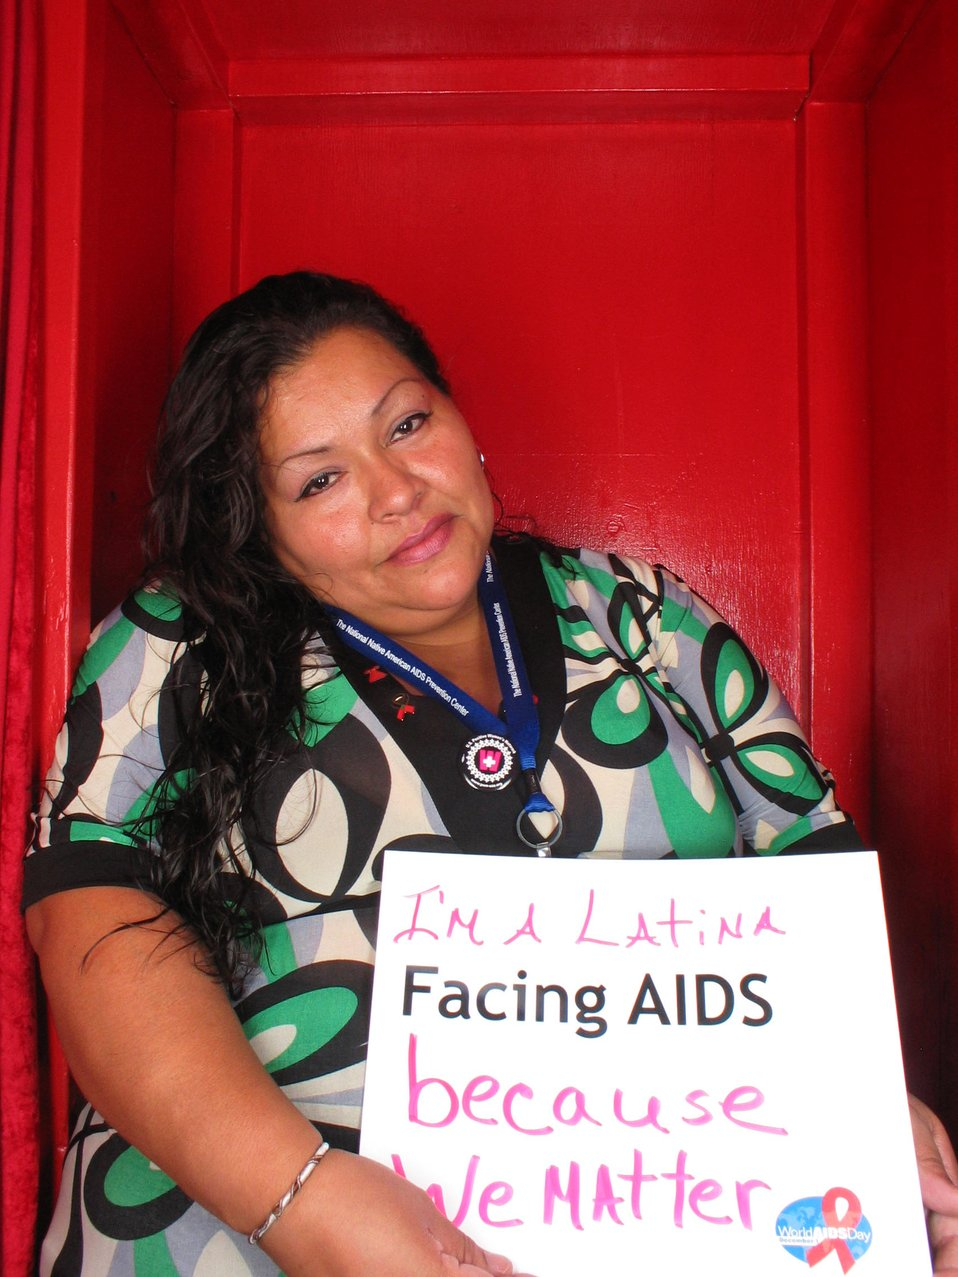 I'm a Latino Facing AIDS because we matter.